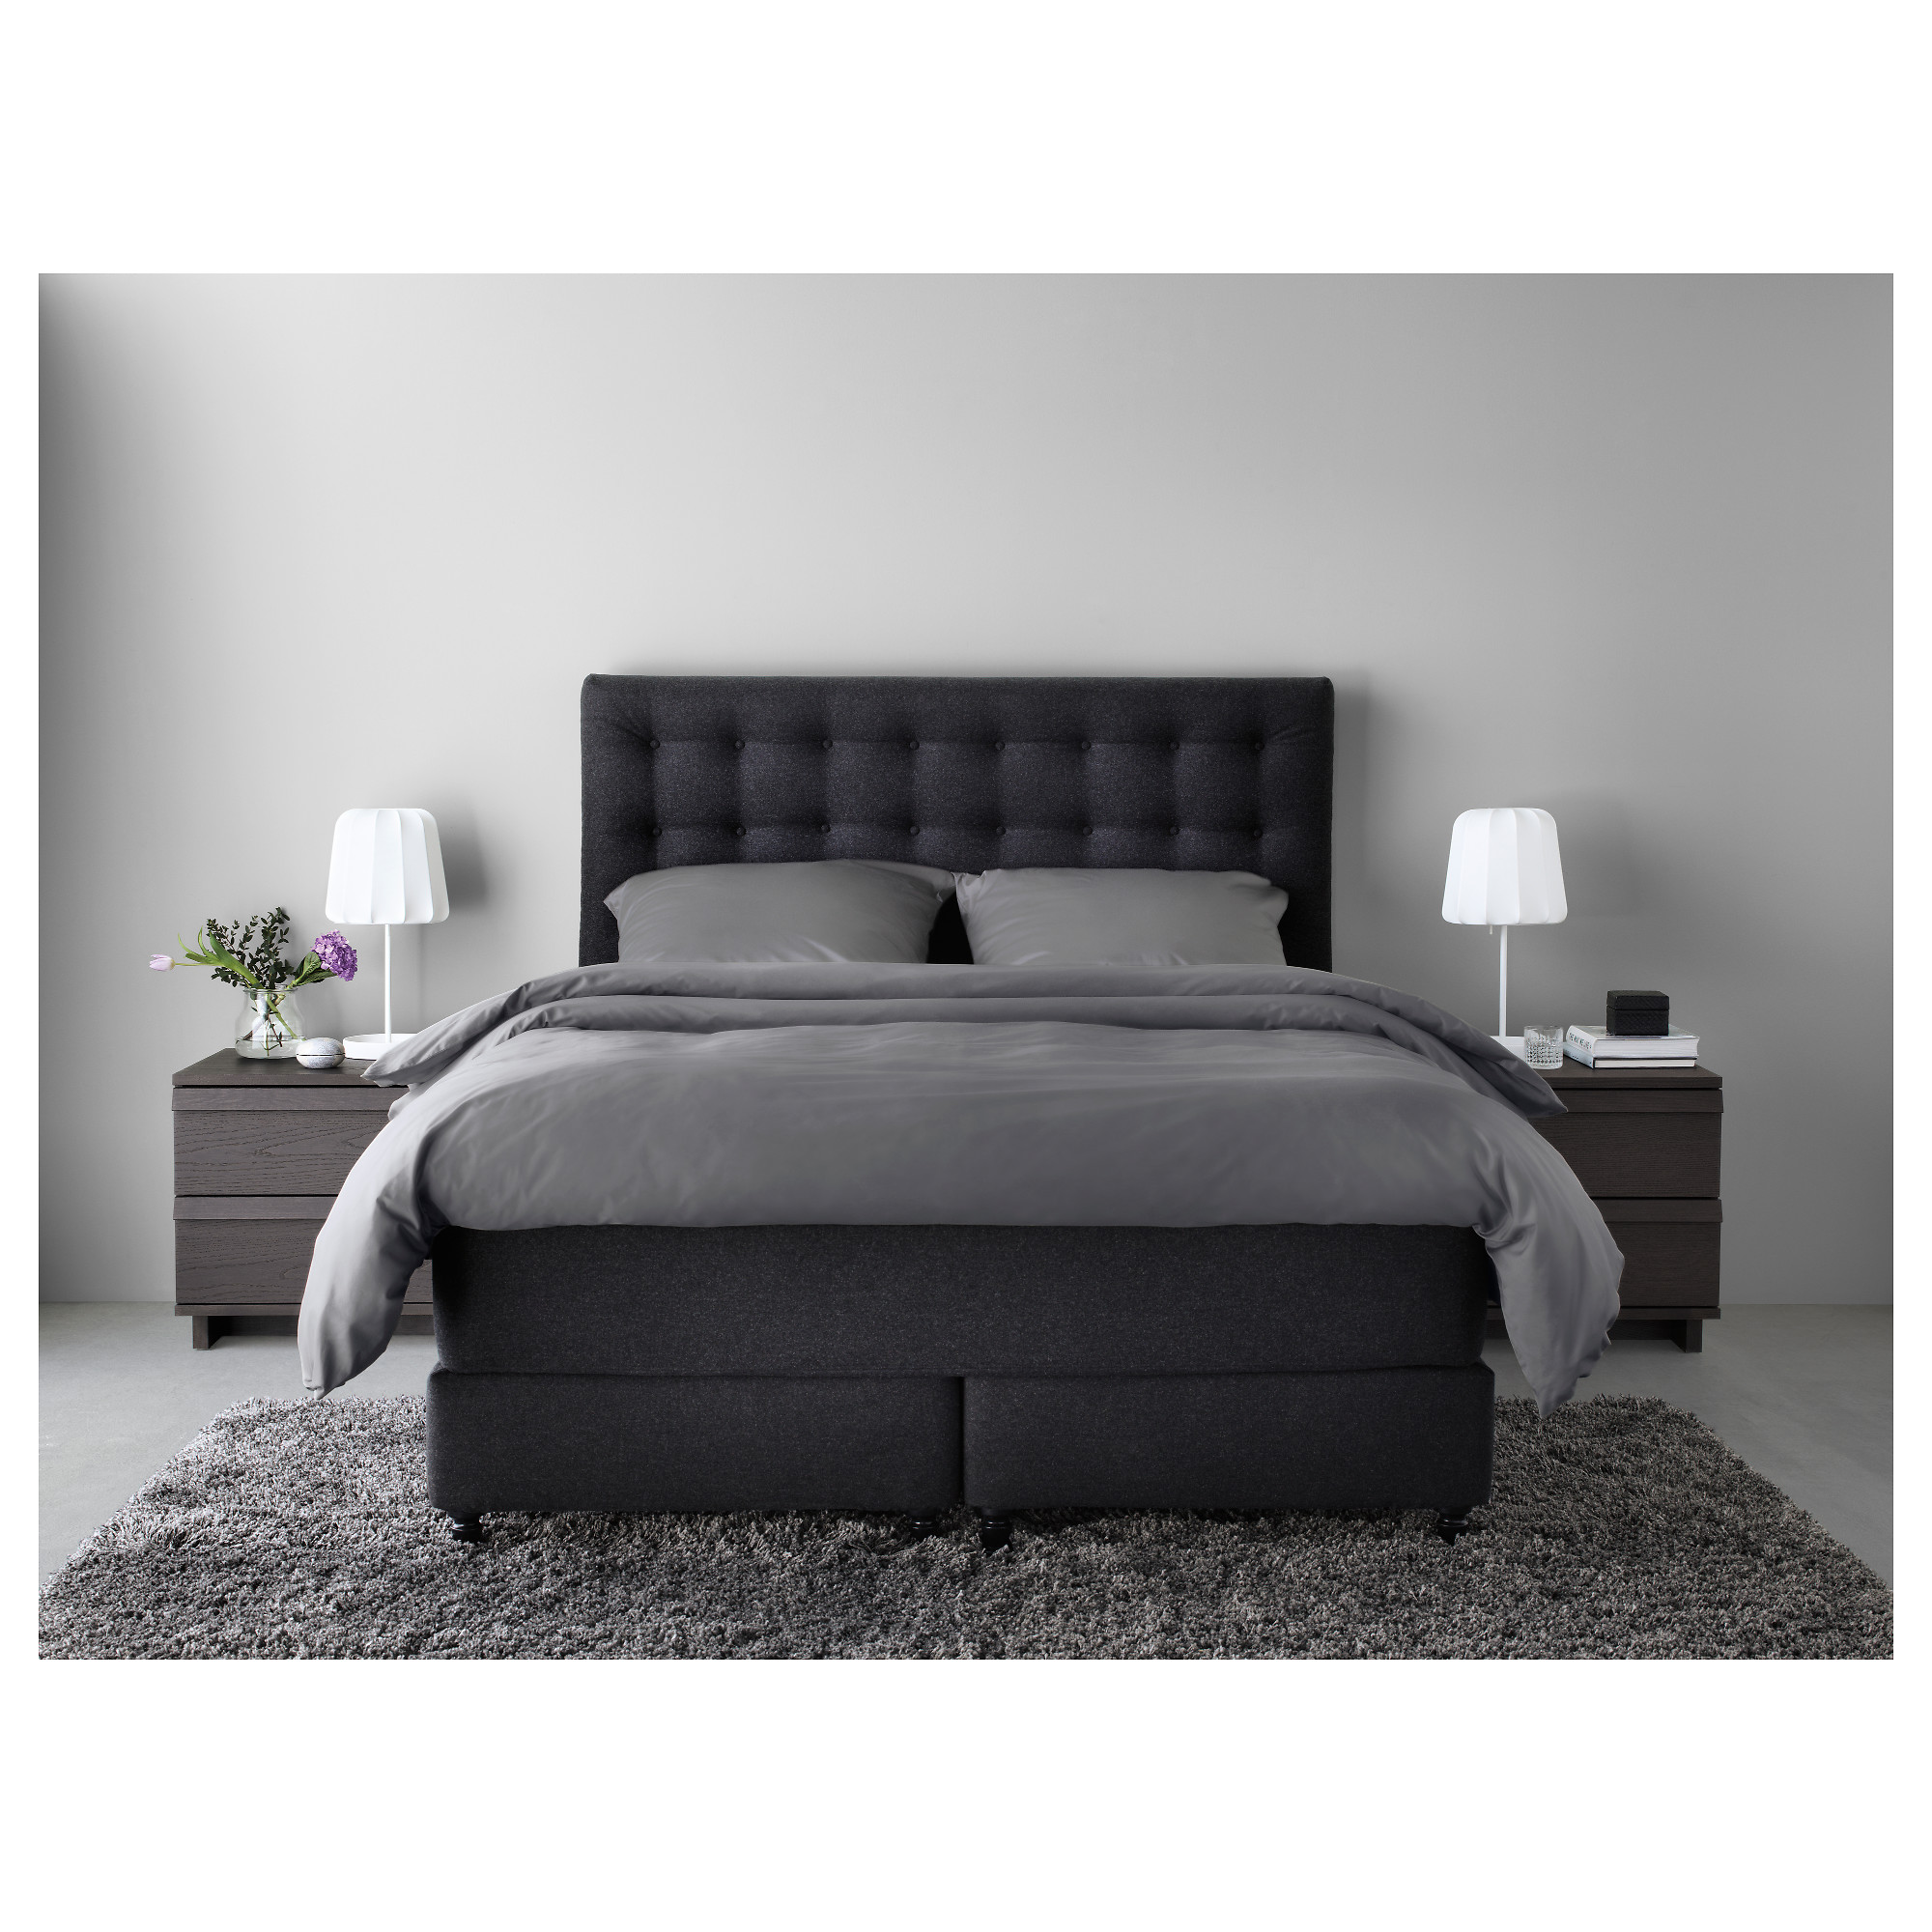 boxspringbett ikea 180x200 swalif. Black Bedroom Furniture Sets. Home Design Ideas